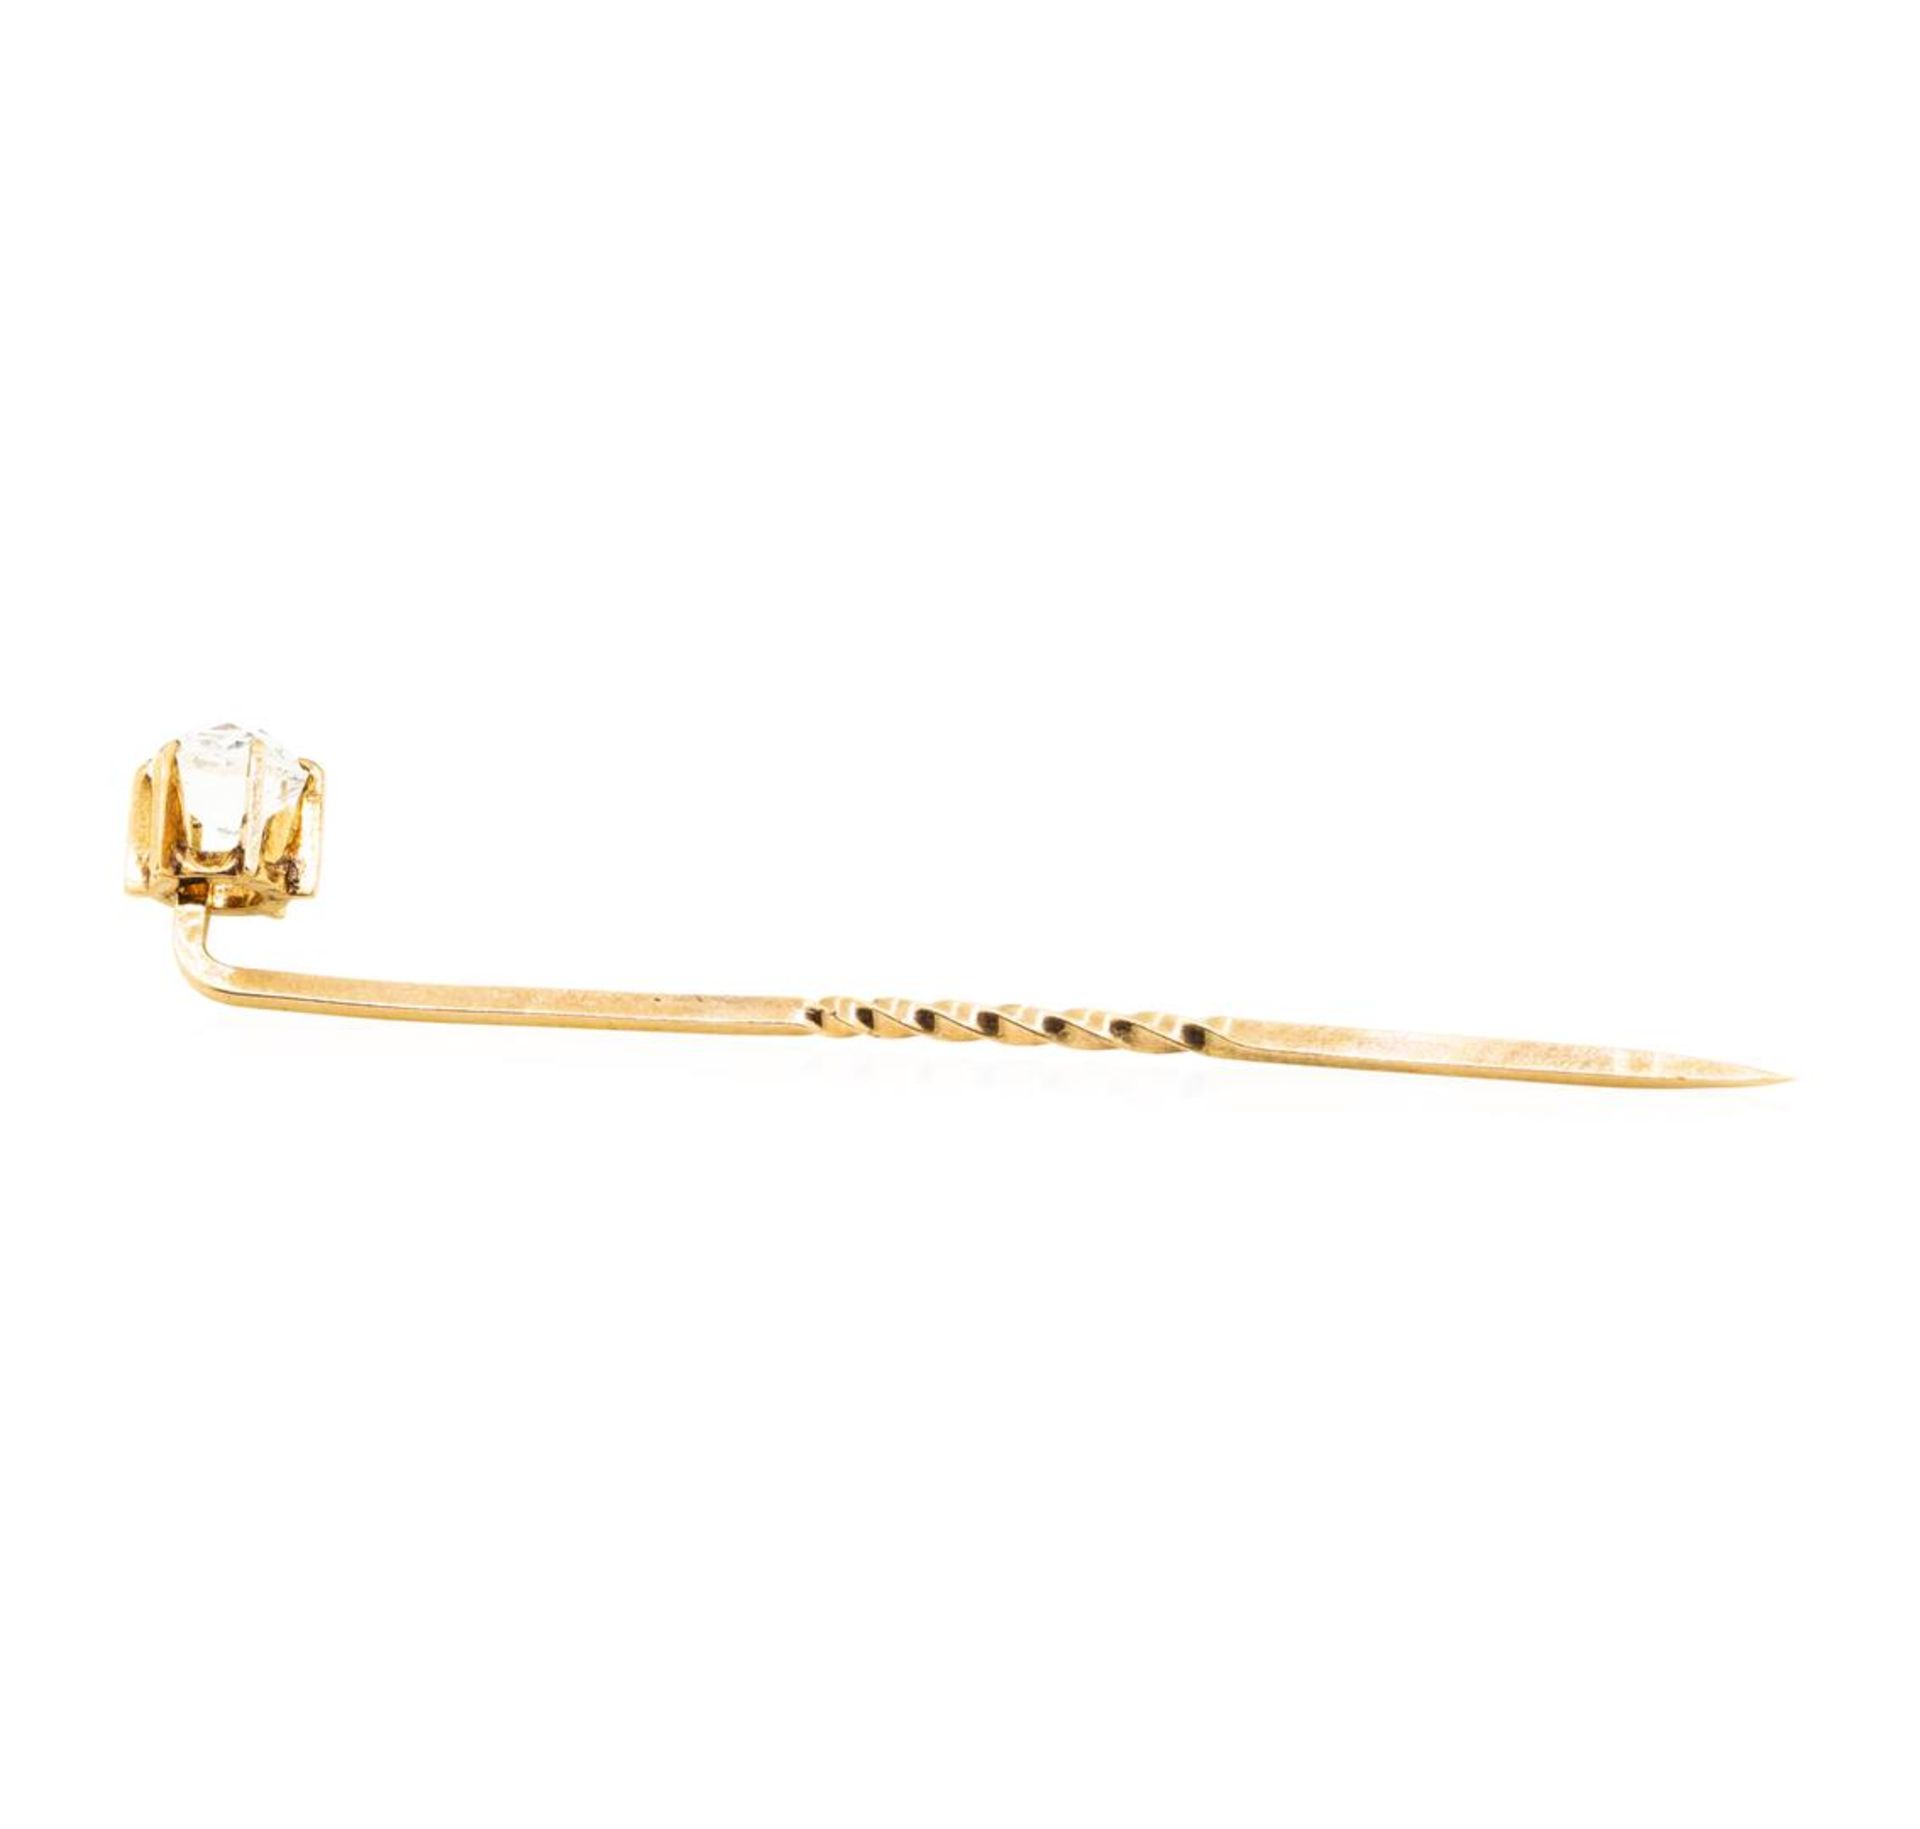 White Crystal Stick Pin - 10KT Yellow - Image 2 of 2